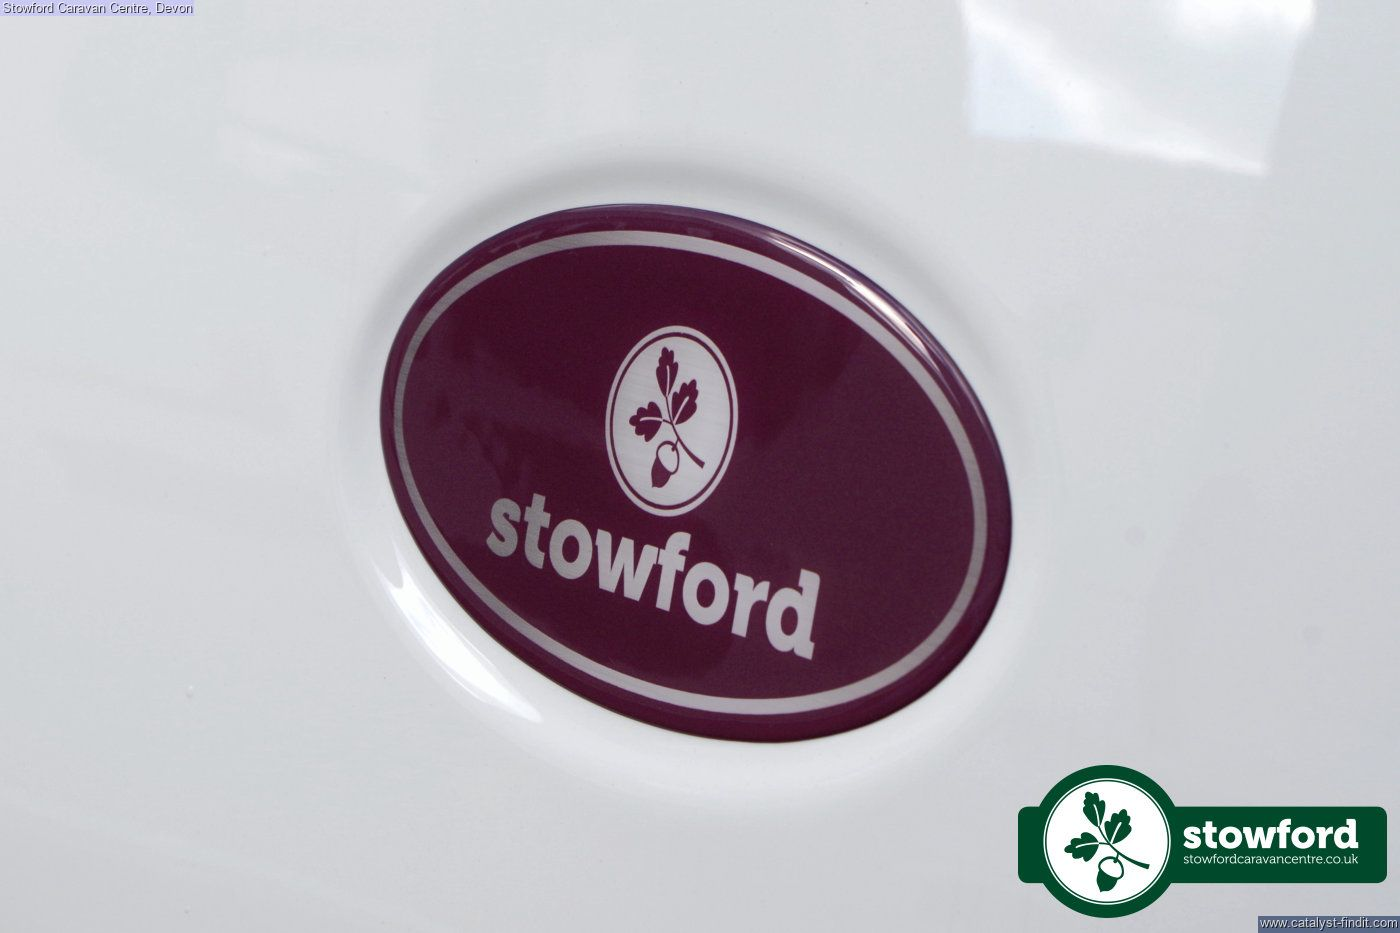 Bailey Stowford ST 760 2020